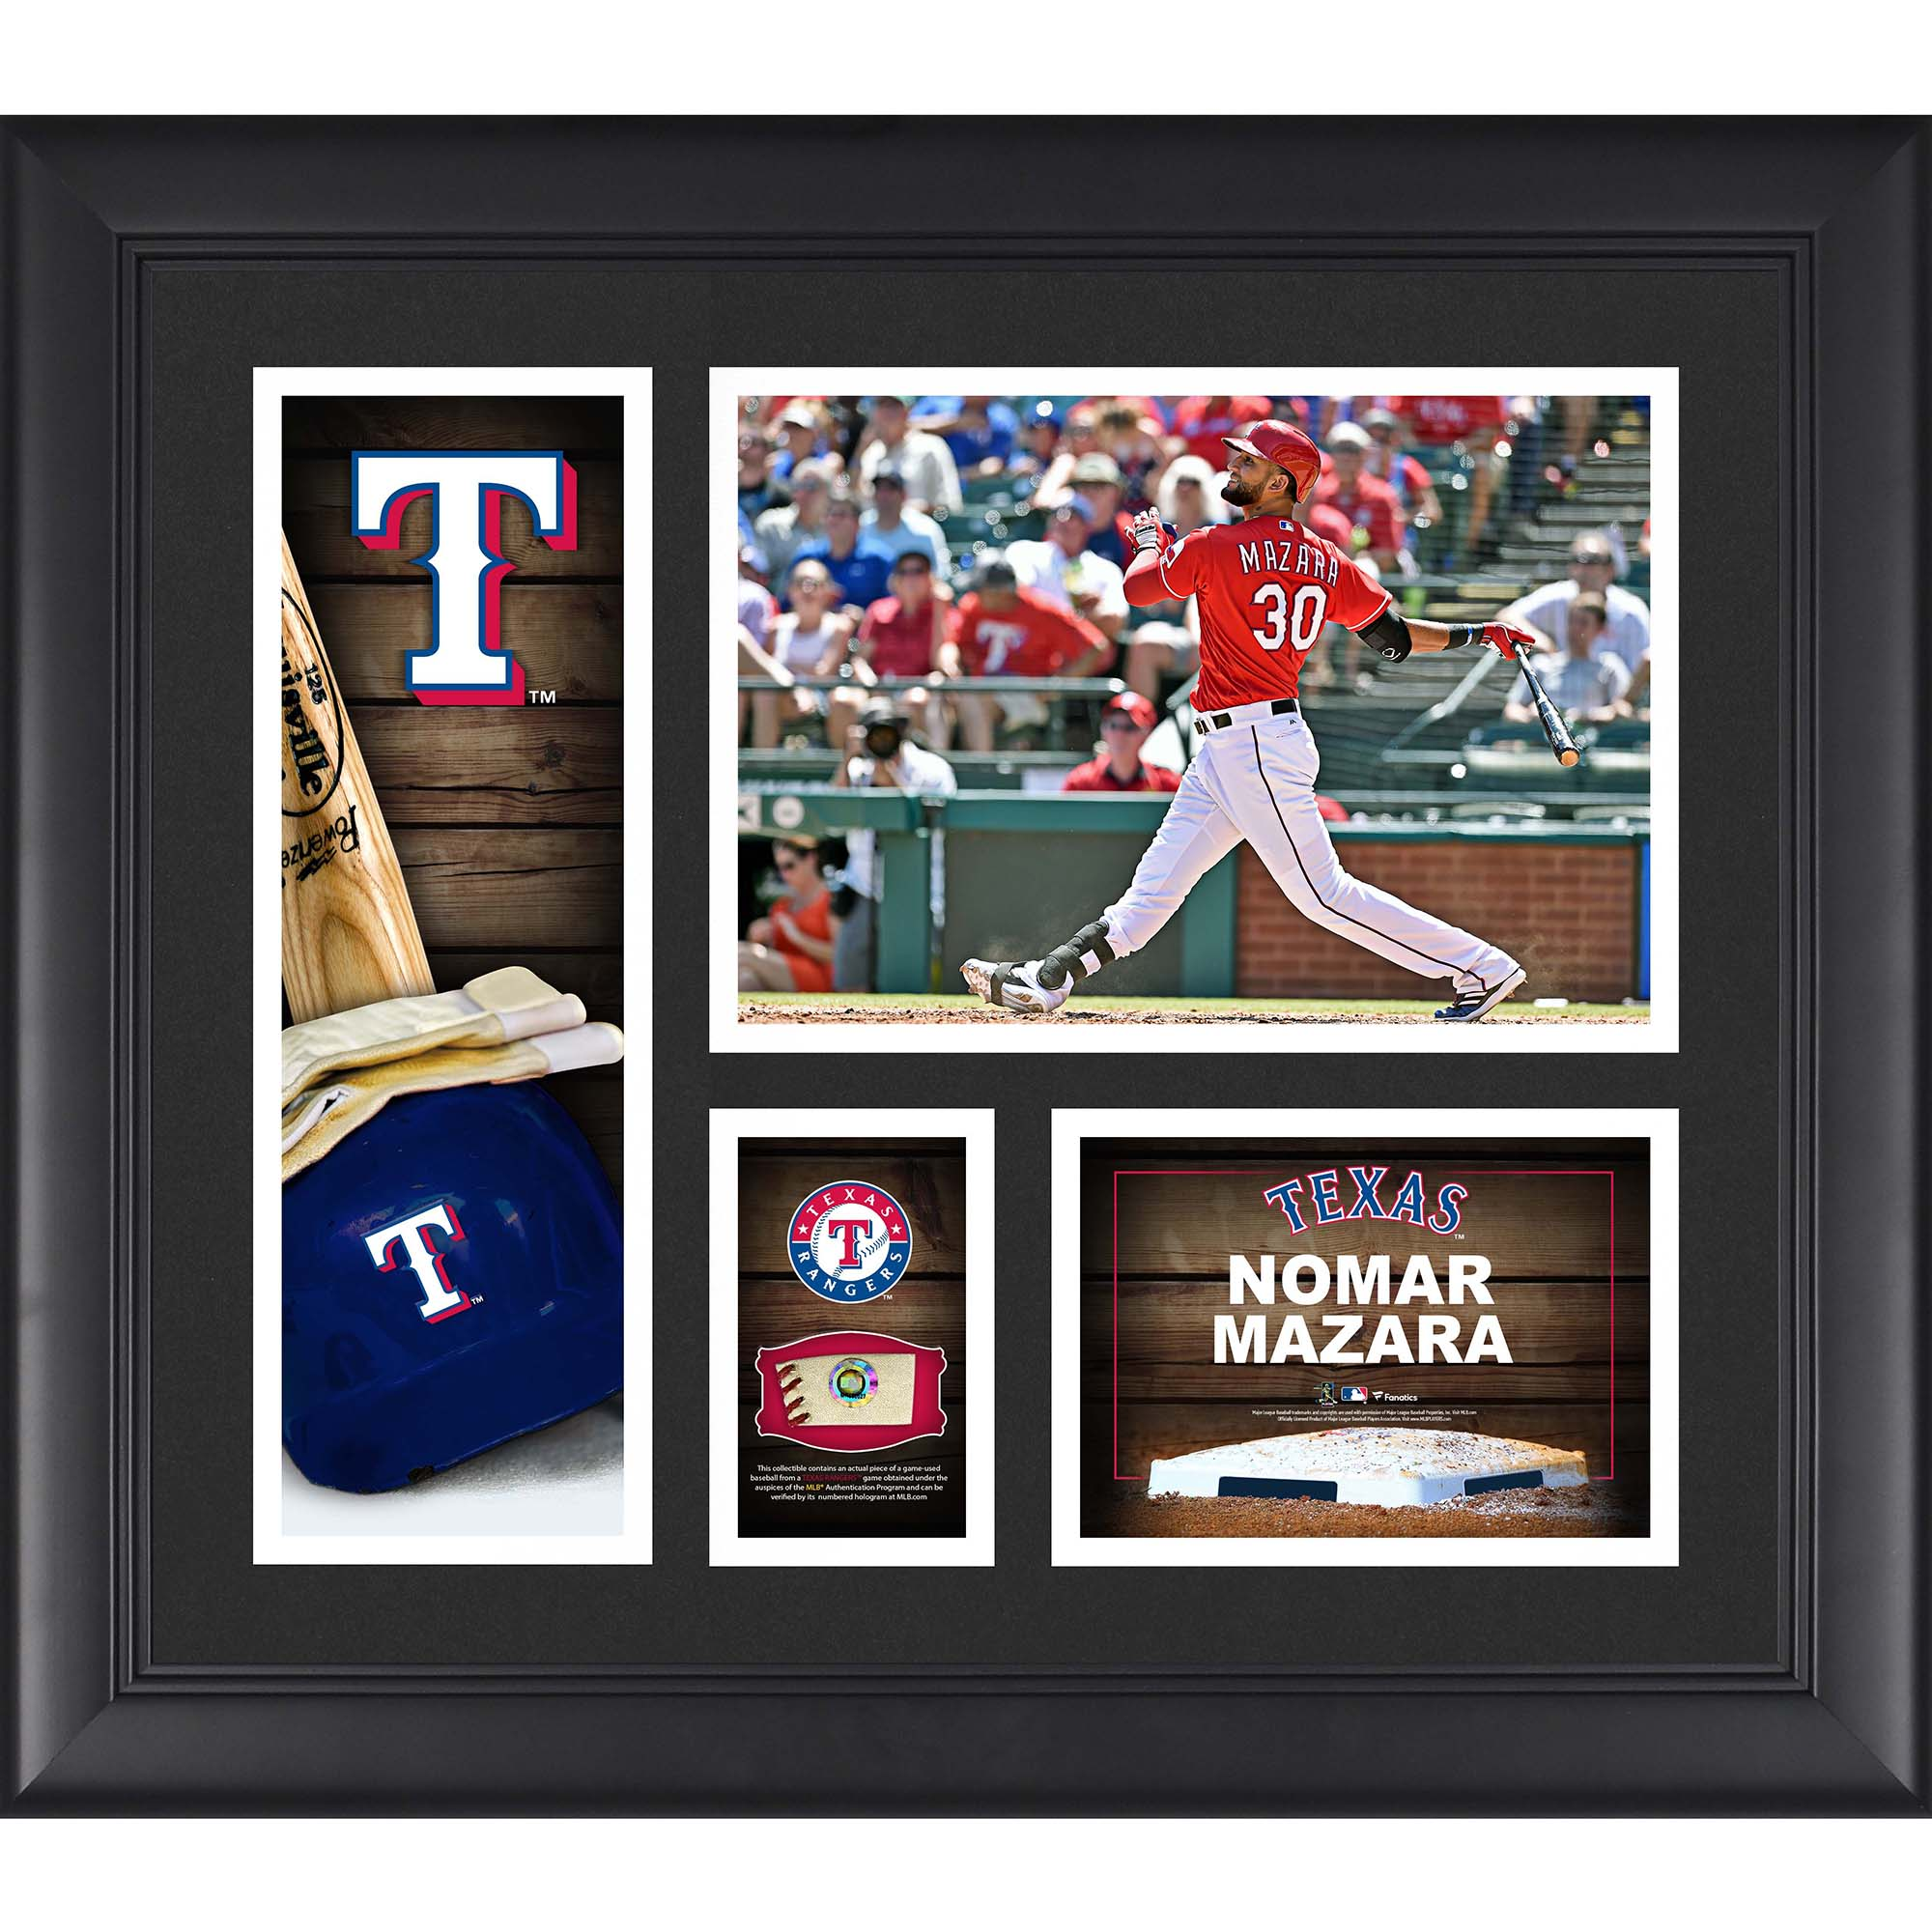 "Nomar Mazara Texas Rangers Fanatics Authentic Framed 15"" x 17"" Player Collage with a Piece of Game-Used Ball - No Size"